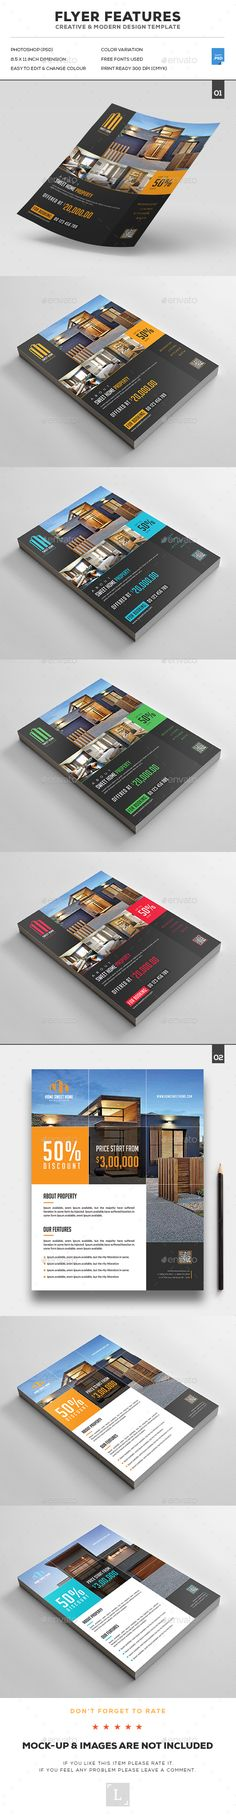 Pin by Mytemplatedesigns on Real Estate Flyer Design Templates - flyers and brochures templates